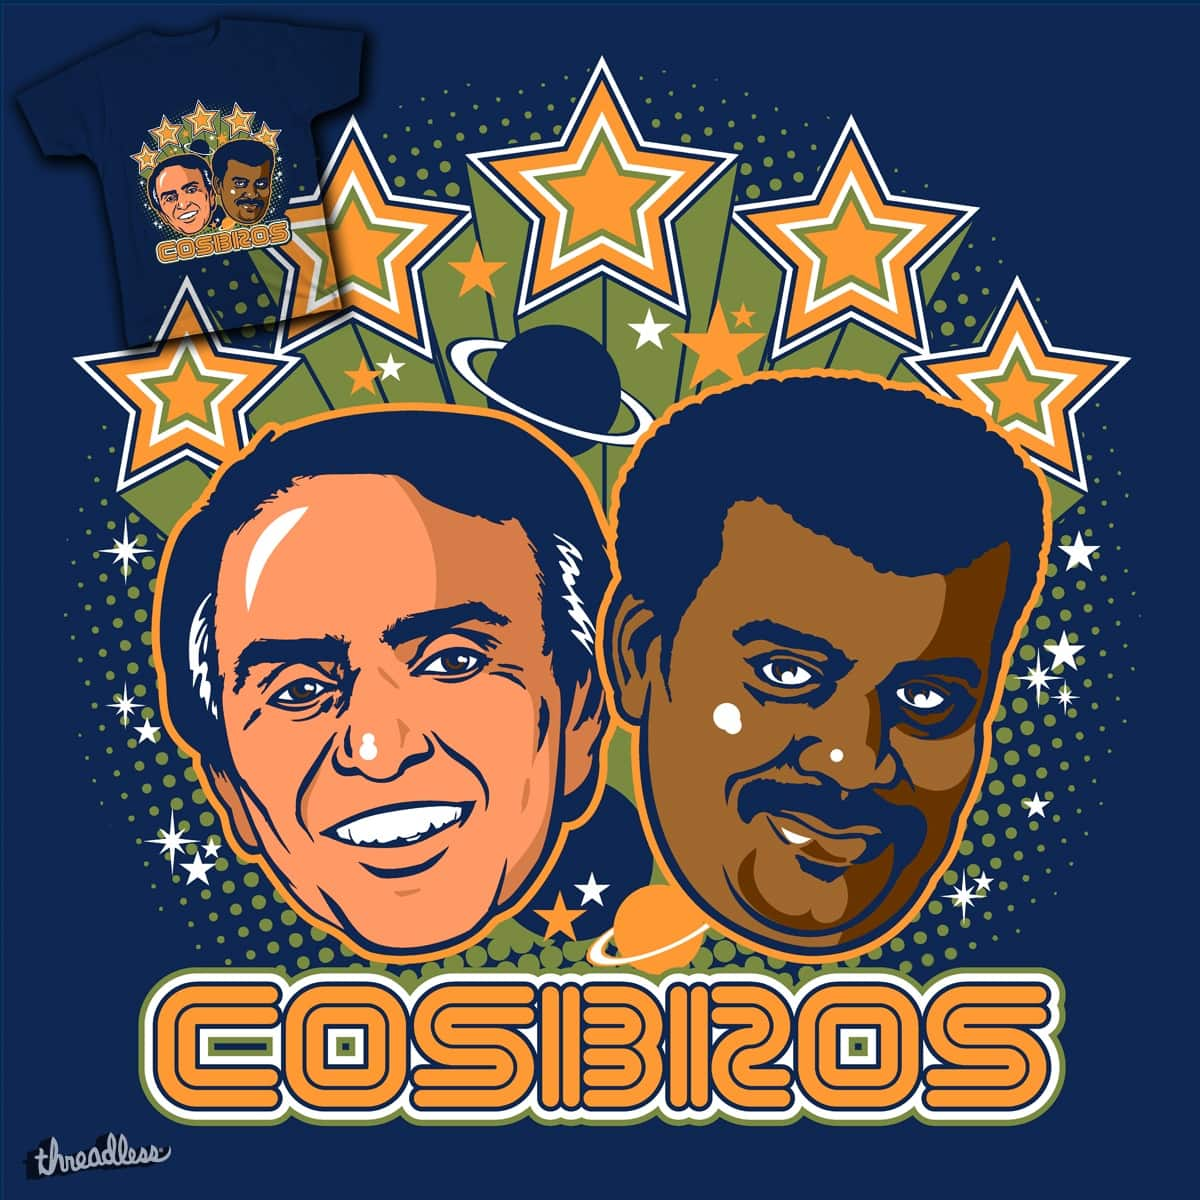 Cosbros by magicgoo on Threadless